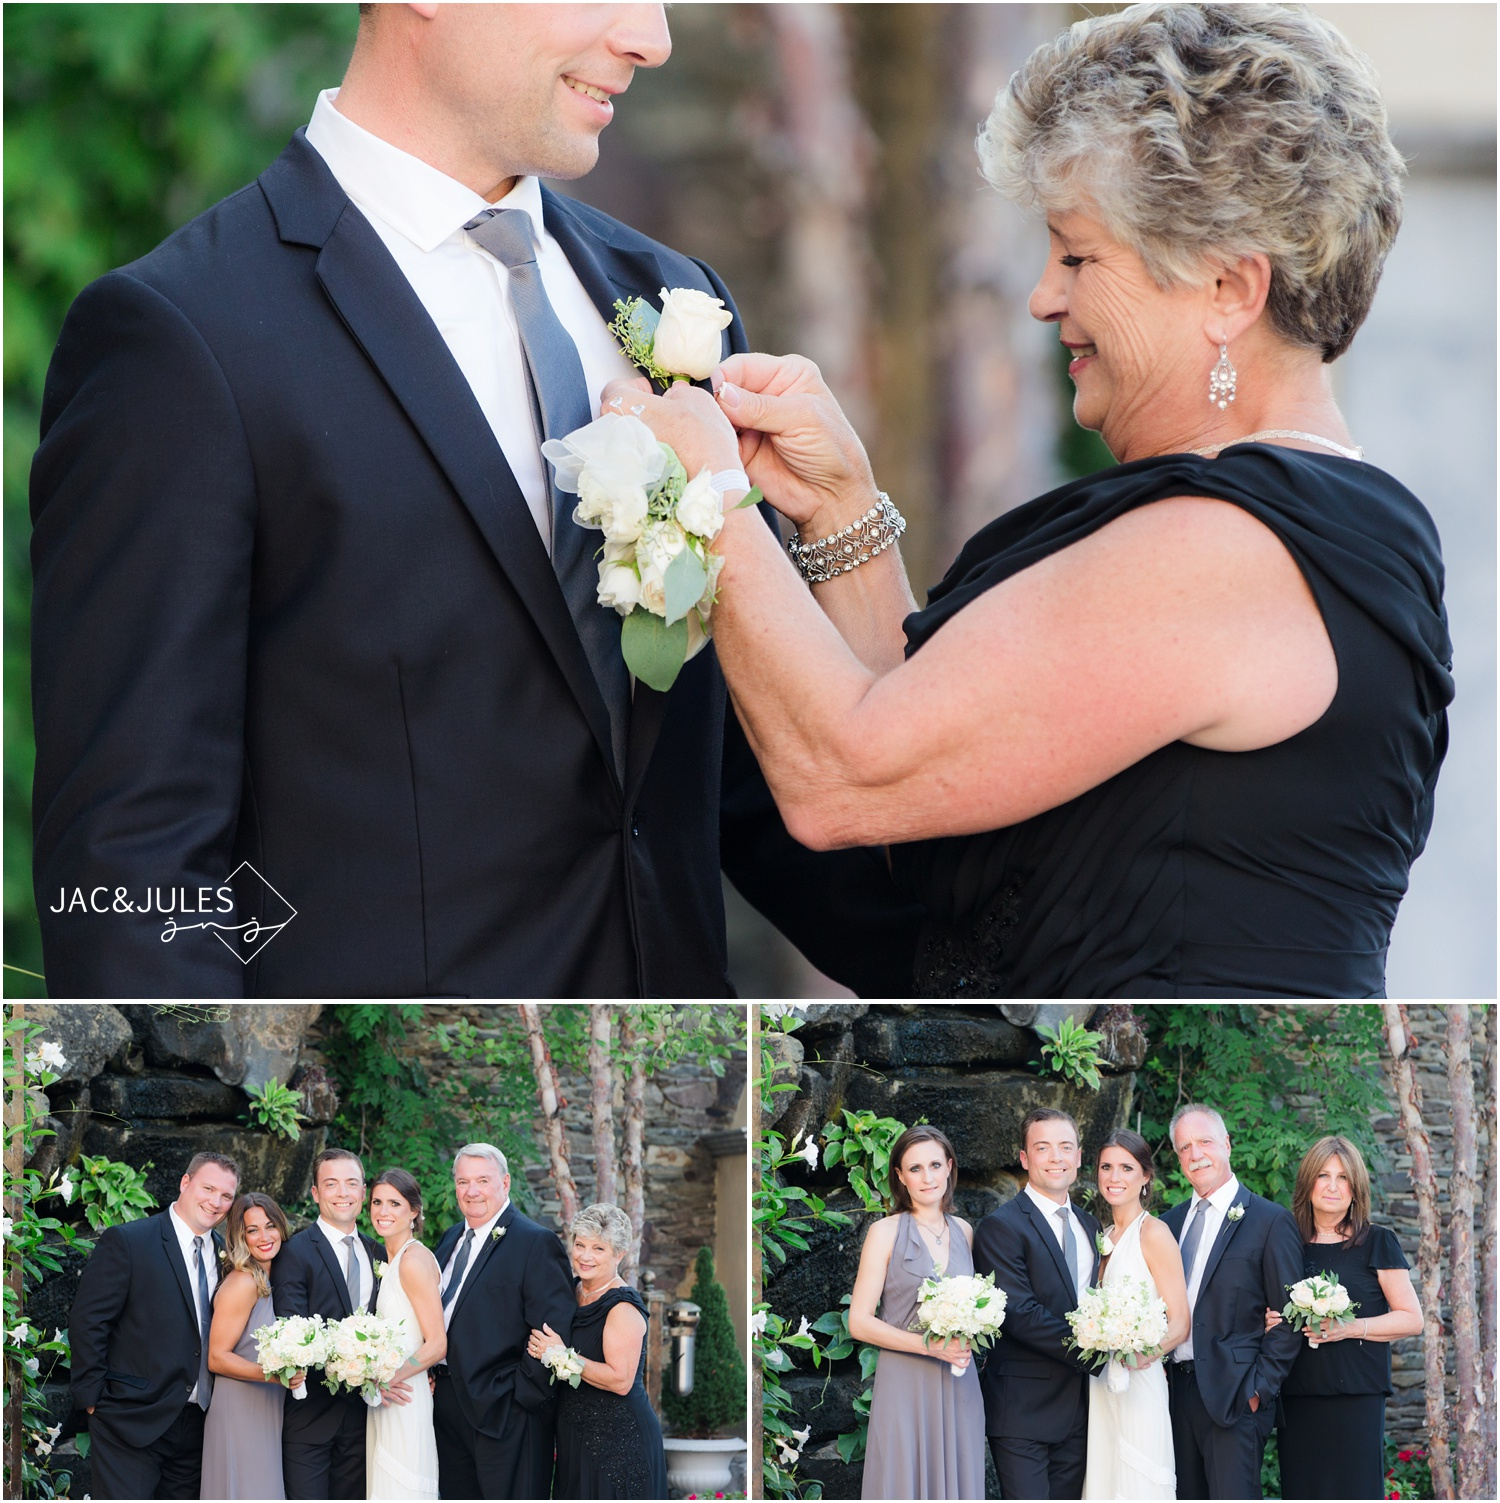 Wedding family photos at Fox Hollow in Woodbury, NY